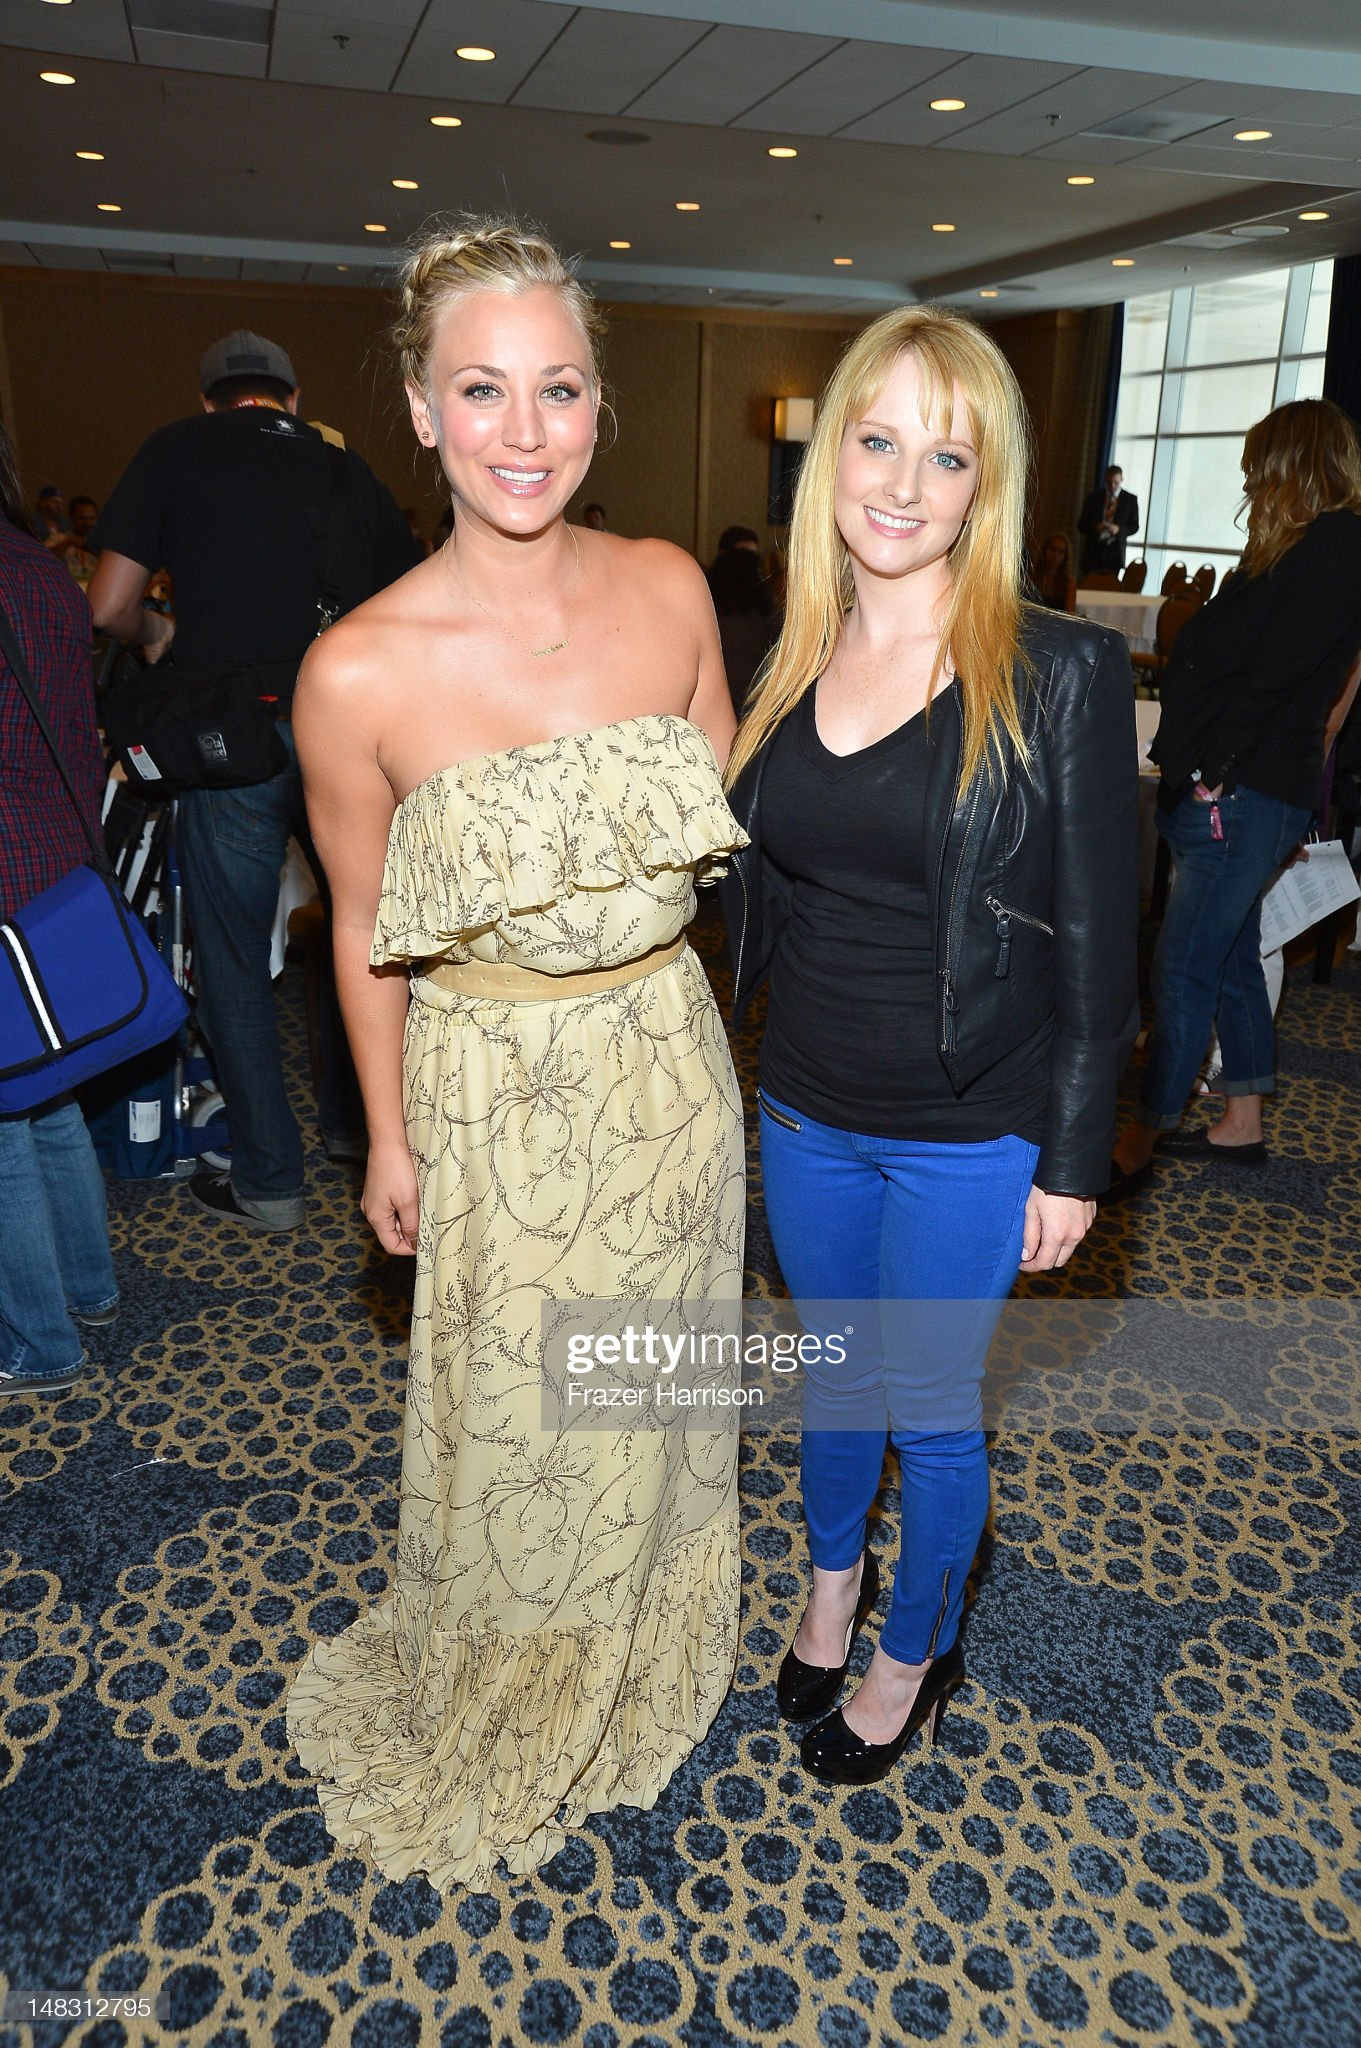 ¿Cuánto mide Kaley Cuoco? - Altura - Real height Actresses-kaley-cuoco-and-melissa-rauch-attend-the-big-bang-theory-picture-id148312795?s=2048x2048